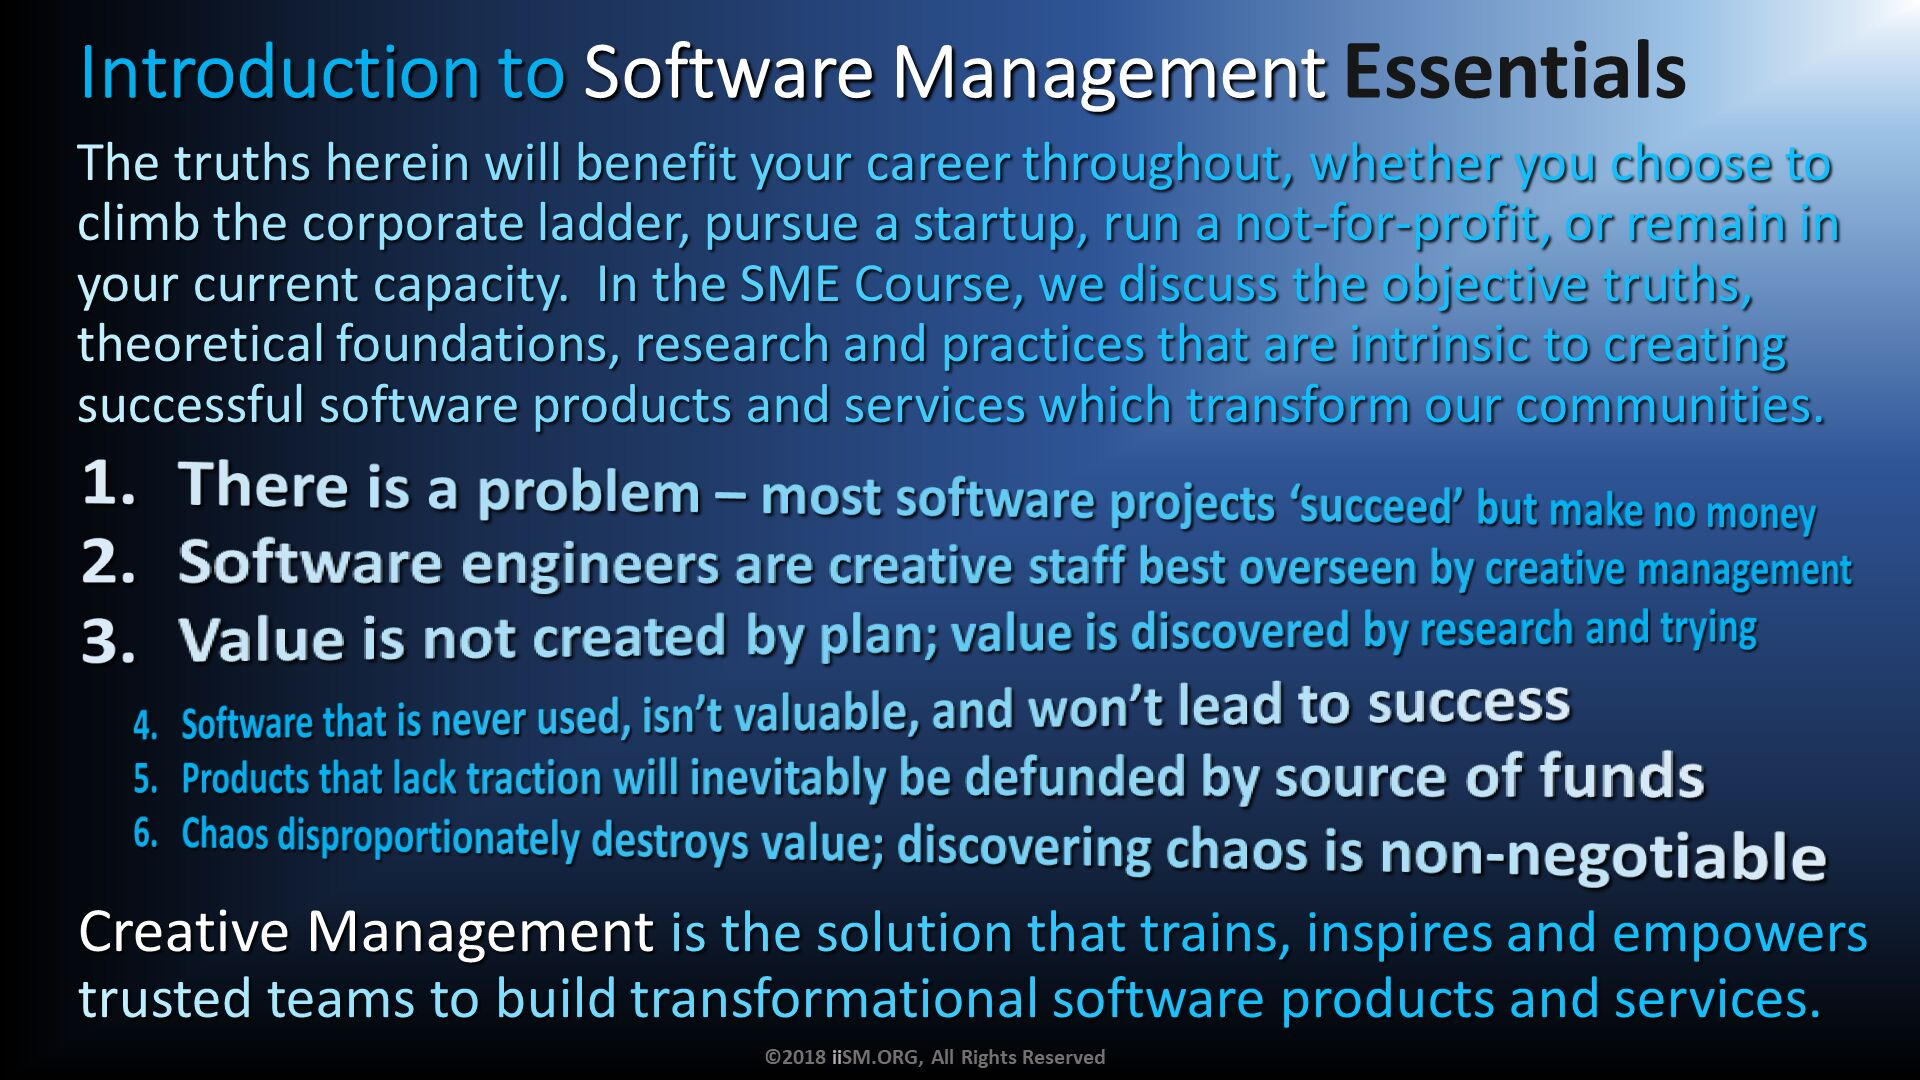 Introduction to Software Management Essentials. There is a problem – most software projects 'succeed' but make no money Software engineers are creative staff best overseen by creative management Value is not created by plan; value is discovered by research and trying. The truths herein will benefit your career throughout, whether you choose to climb the corporate ladder, pursue a startup, run a not-for-profit, or remain in your current capacity.  In the SME Course, we discuss the objective truths, theoretical foundations, research and practices that are intrinsic to creating successful software products and services which transform our communities. . Software that is never used, isn't valuable, and won't lead to success Products that lack traction will inevitably be defunded by source of funds Chaos disproportionately destroys value; discovering chaos is non-negotiable . Creative Management is the solution that trains, inspires and empowers trusted teams to build transformational software products and services. ©2018 iiSM.ORG, All Rights Reserved.